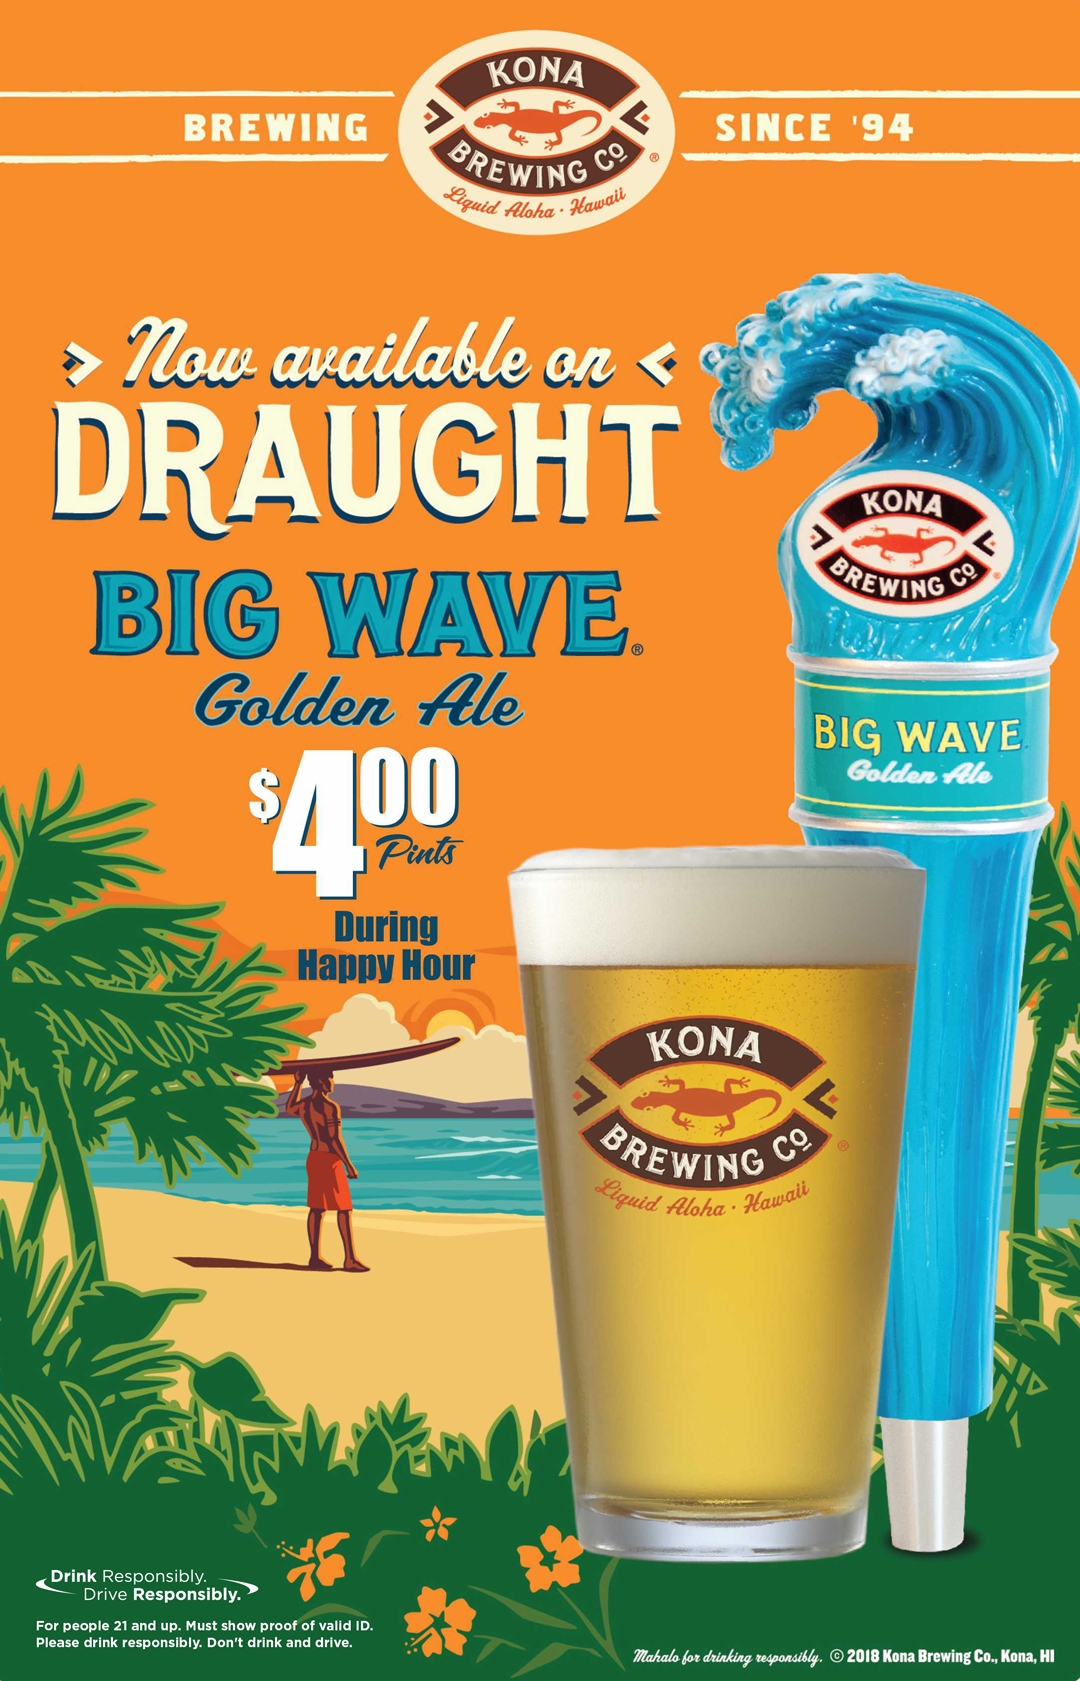 $4 Big Wave Golden Ale Pints during Happy Hour